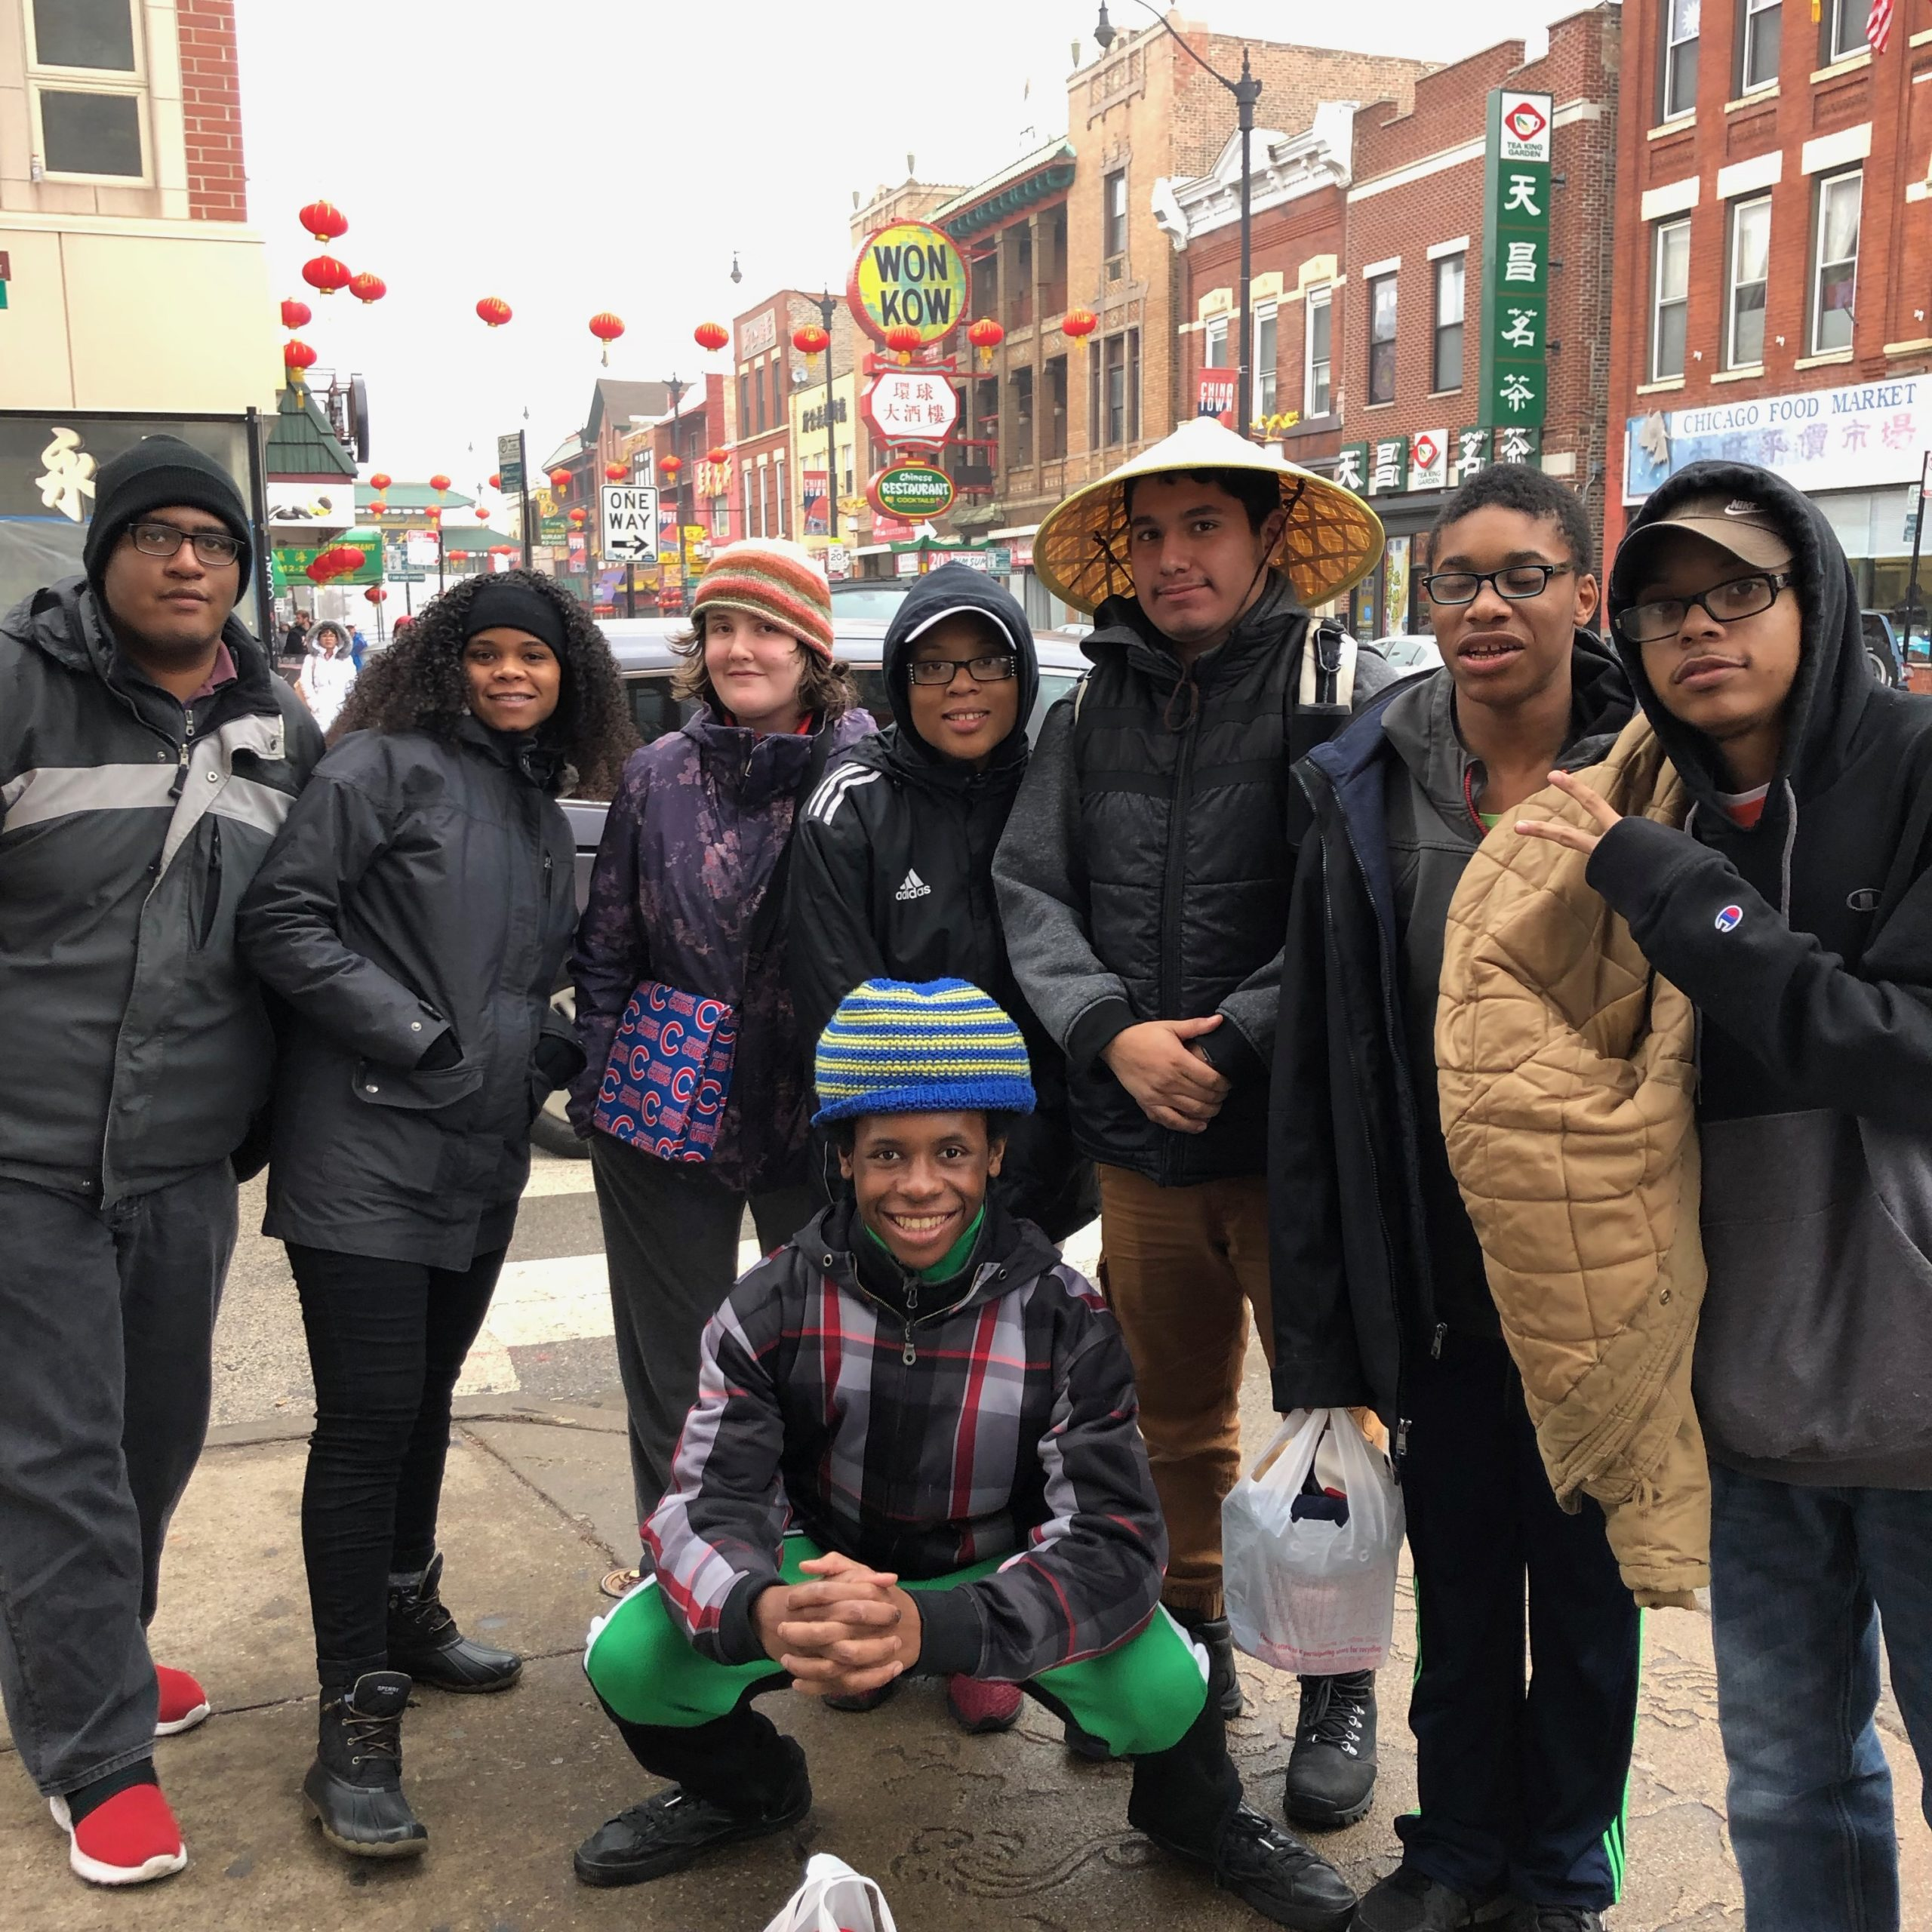 8 high school students stand outside on a city street.